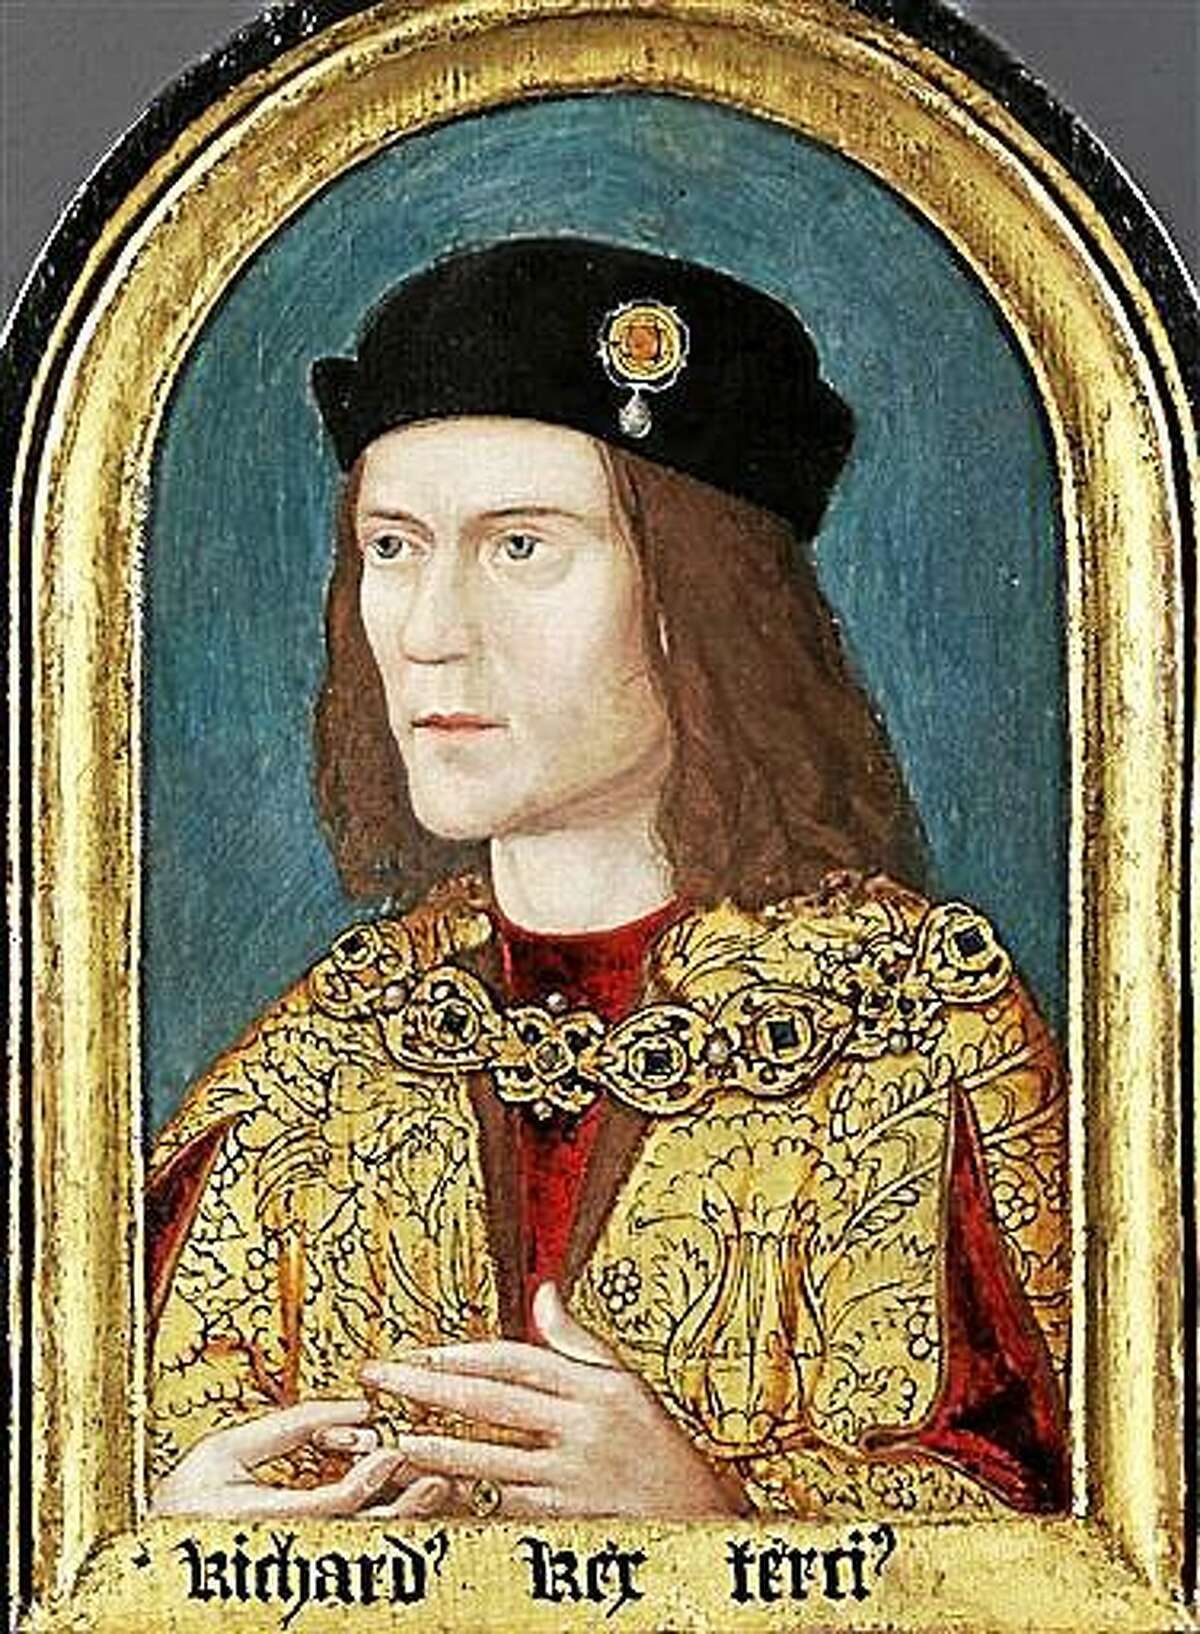 FILE- This is an undated file photo released by the University of Leicester, England, showing a portrait of Britain's King Richard II who's skeletal remains were found underneath a car park in Leicester, England, in September 2012, after being missing for around 500 years. According to research published Tuesday Dec. 2, 2014, in the Nature Communications journal, scientists compared the skeleton?s DNA to predict eye and hair color of the long lost king. However samples from living relatives found no matches, a discovery that could throw the nobility of some royal descendants into question, including Henry V, Henry VI and the entire Tudor royal dynasty. But Kevin Schurer, pro vice-chancellor of the University of Leicester, said England?s current royal family does not claim Richard III as a relative and shouldn?t be worried about the legitimacy of their royal line. (AP Photo/Society Of Antiquities Of London via University of Leicester, FILE)